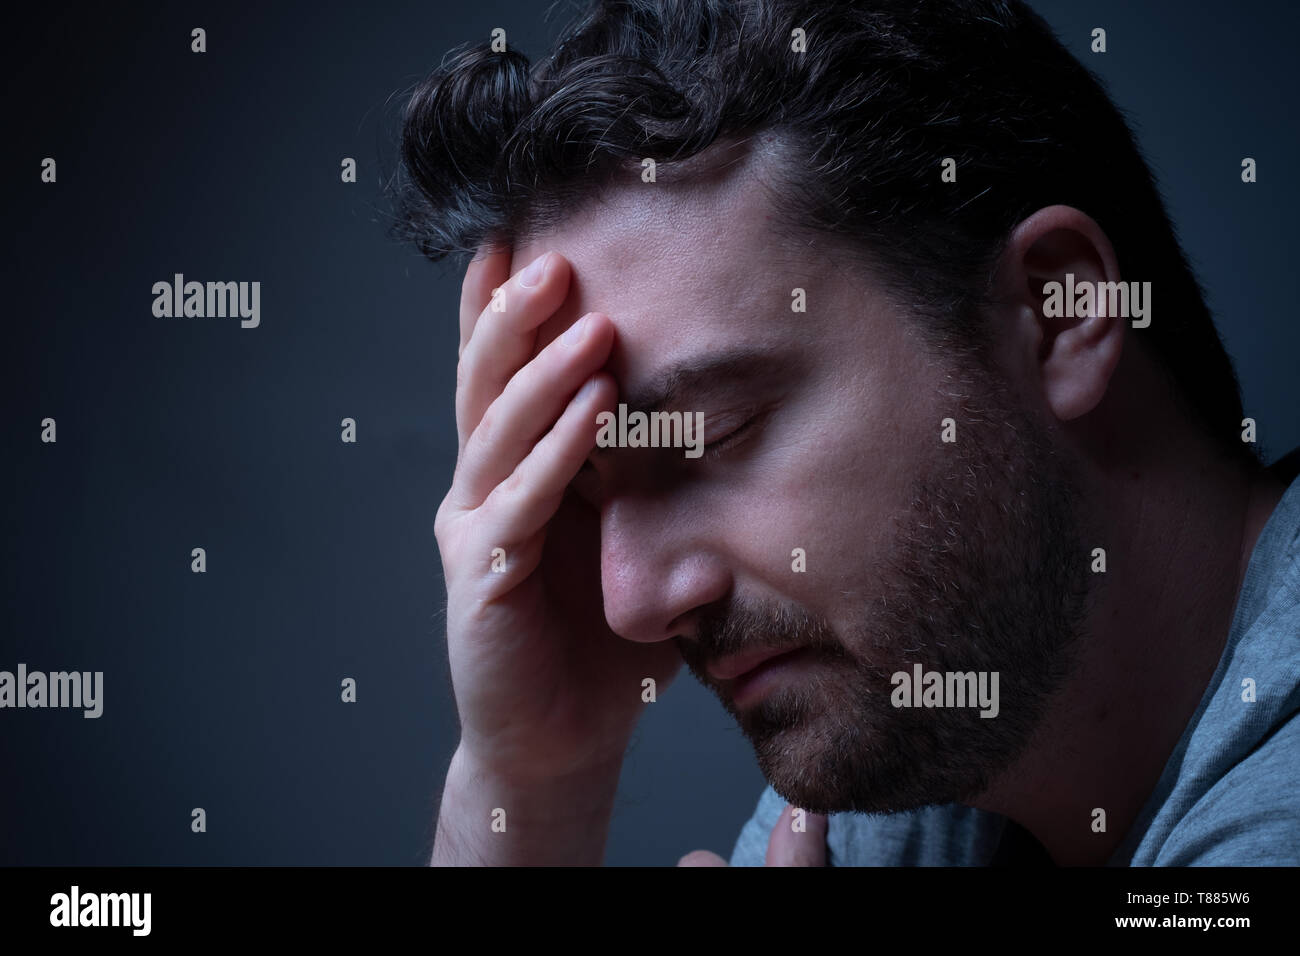 Man suffering for the mental disorder disturb - Stock Image